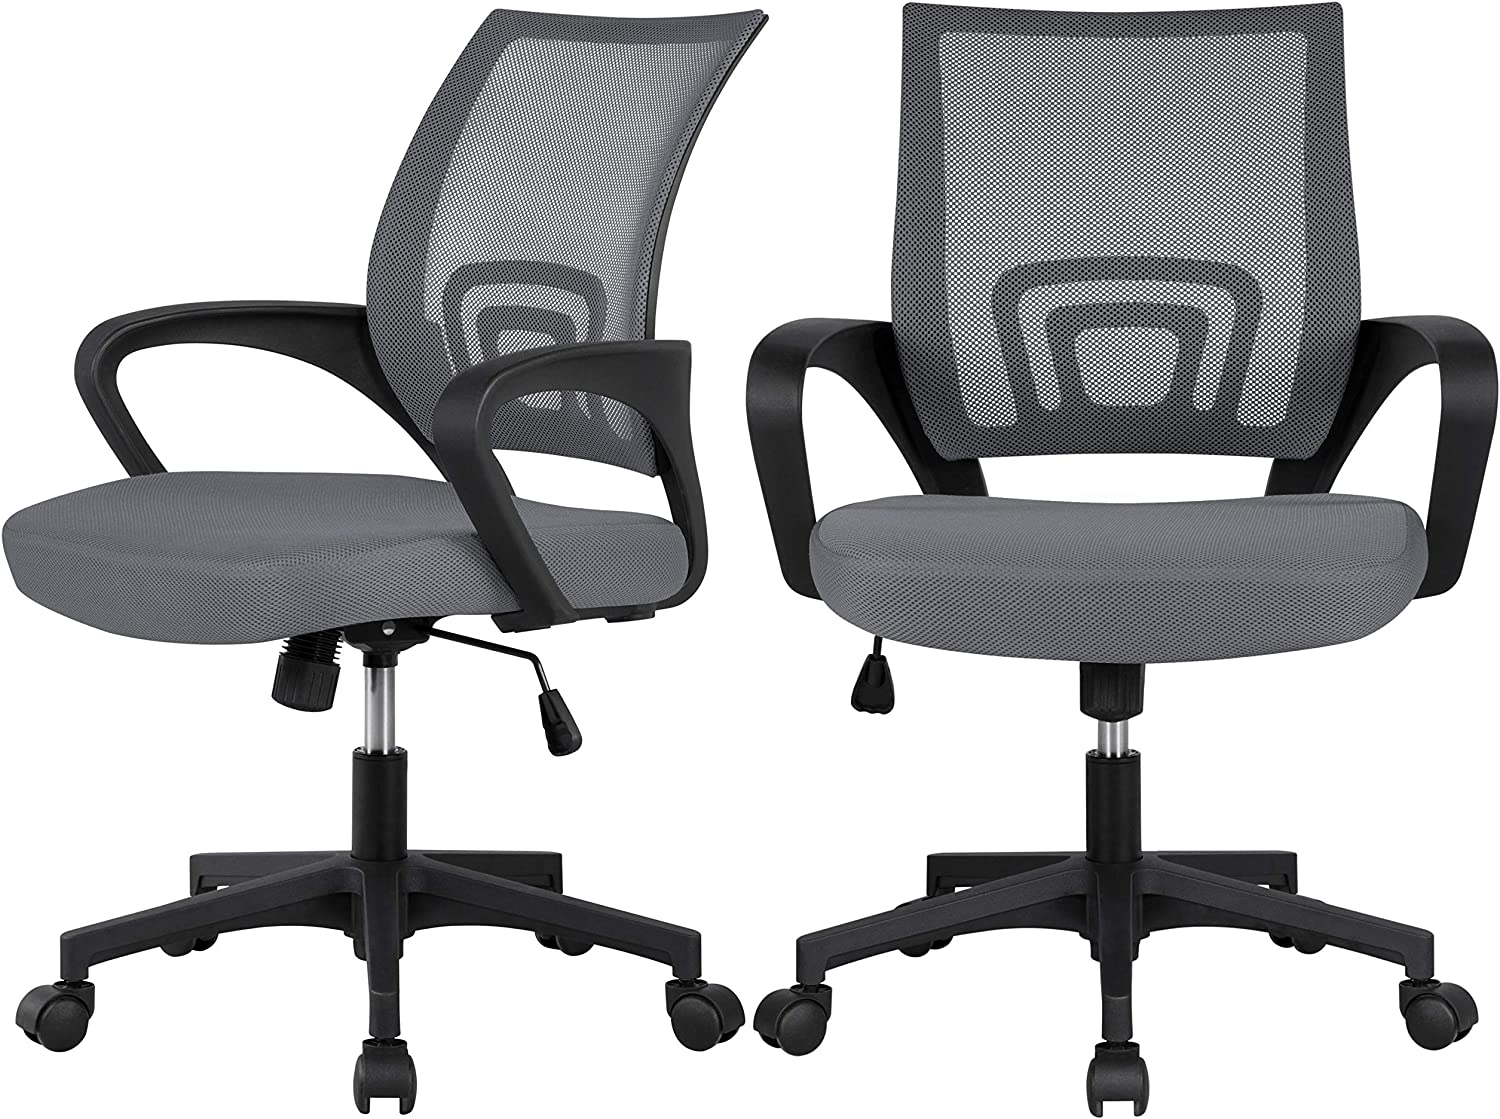 YAHEETECH 2 Pack Ergonomic Office Chair with 360° Rolling Casters, Mesh Mid-Back Computer Chair for Recreation Dark Gray